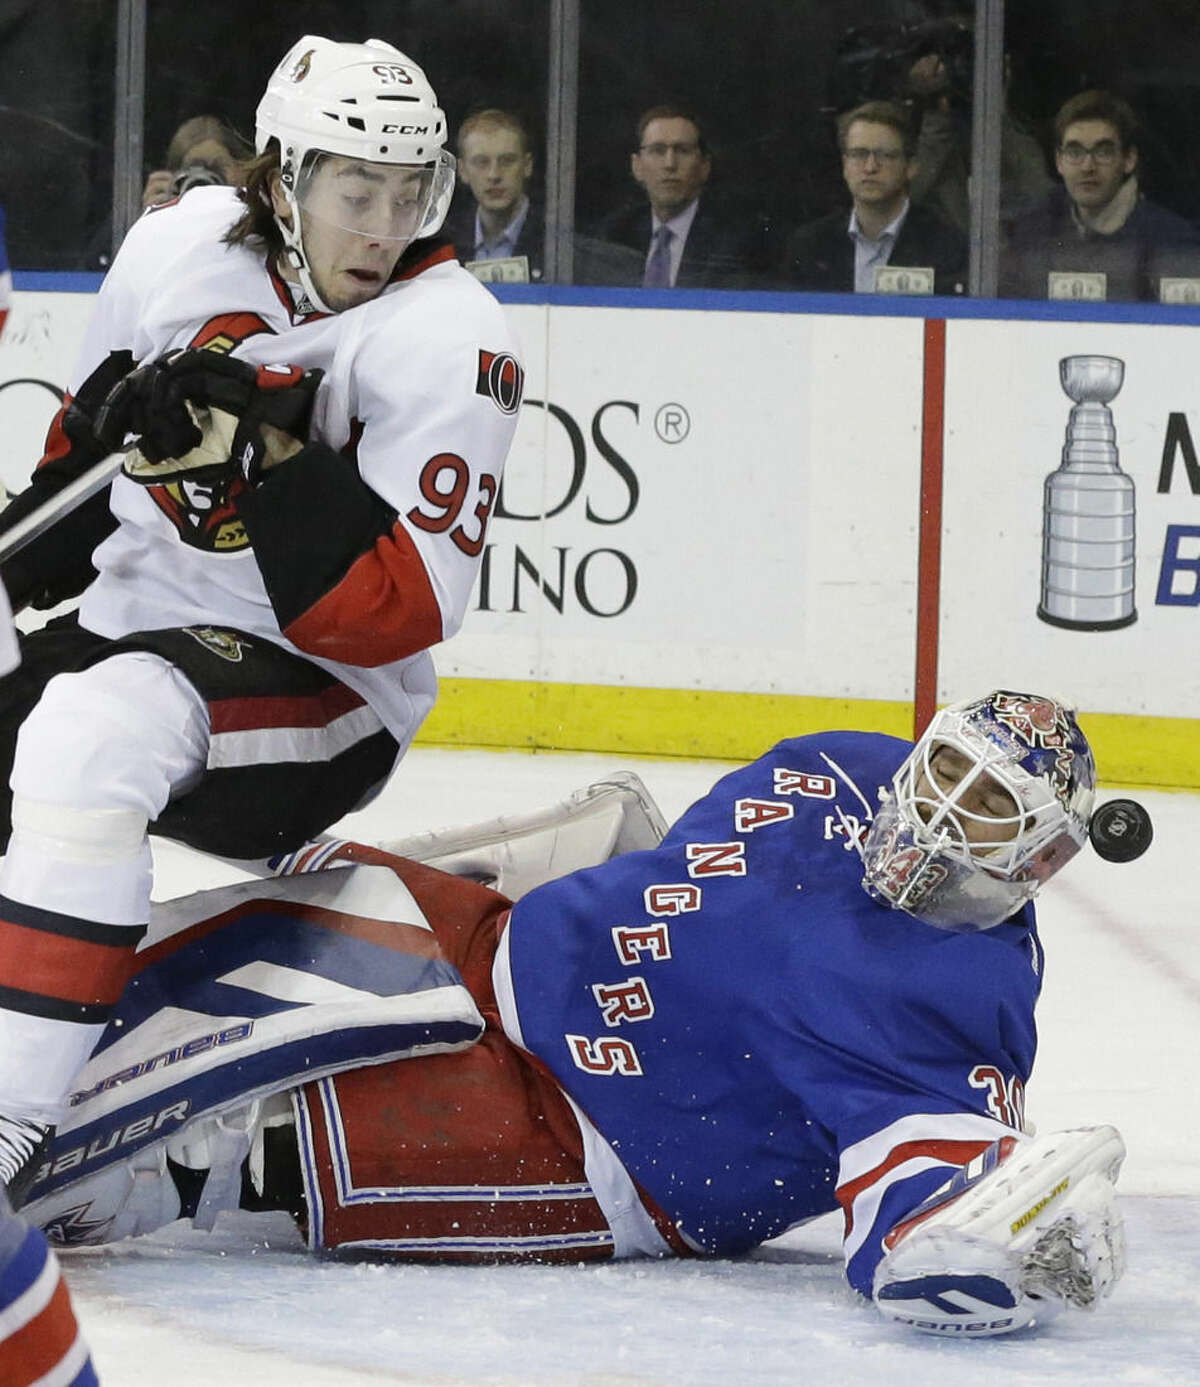 Ottawa Senators center Mika Zibanejad (93) watches as the puck gets past New York Rangers goalie Henrik Lundqvist during the first period of an NHL hockey game, Thursday, April 9, 2015, at Madison Square Garden in New York. The goal was disallowed. (AP Photo/Mary Altaffer)